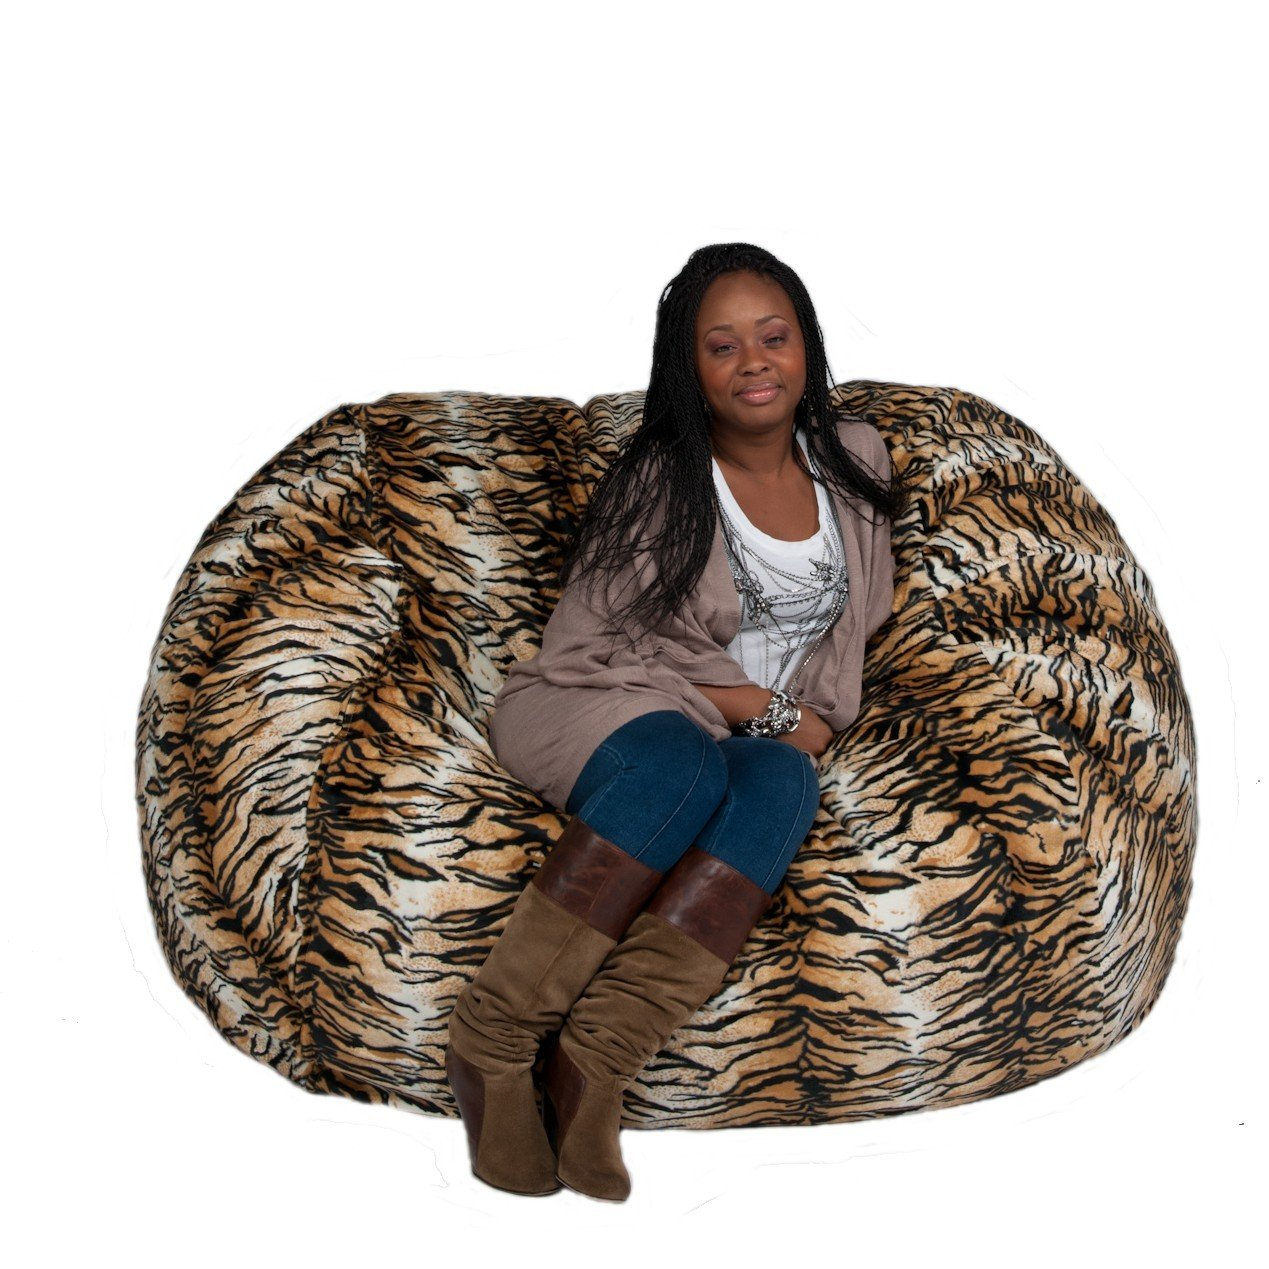 Cozy Sack 5-Feet Bean Bag Chair, Large, Tiger Print